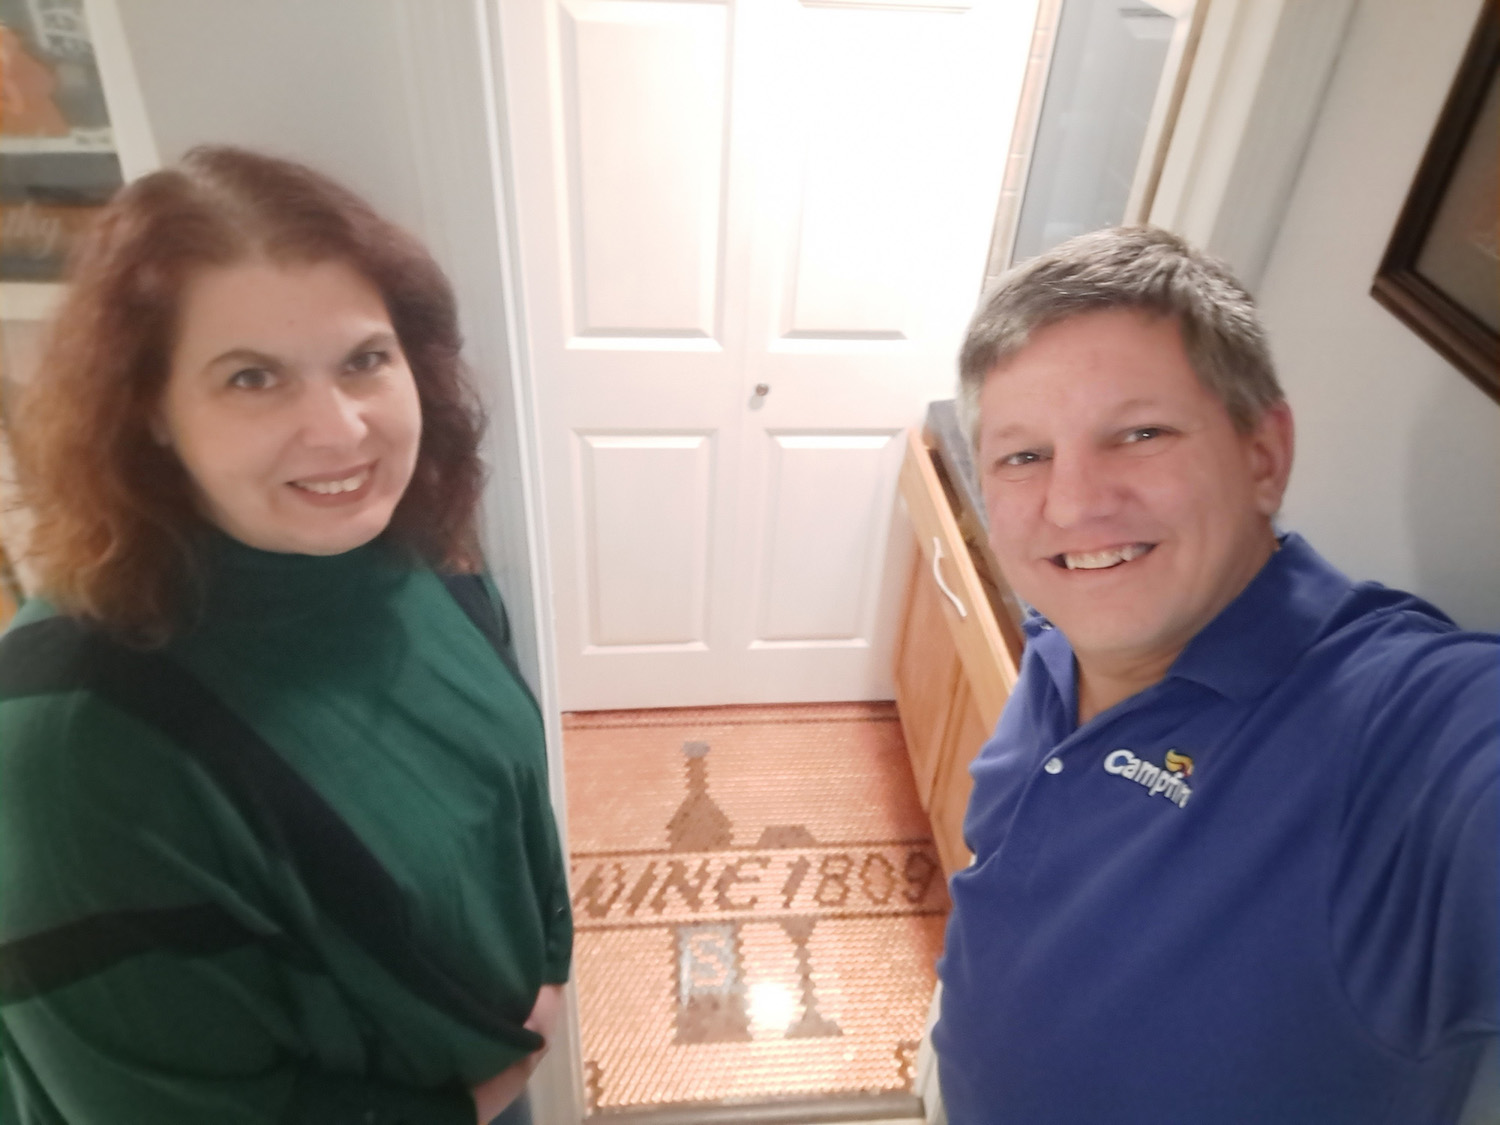 Crafty Husband Surprises Wife by Covering Wine Cellar Floor With Almost 3,000 Pennies